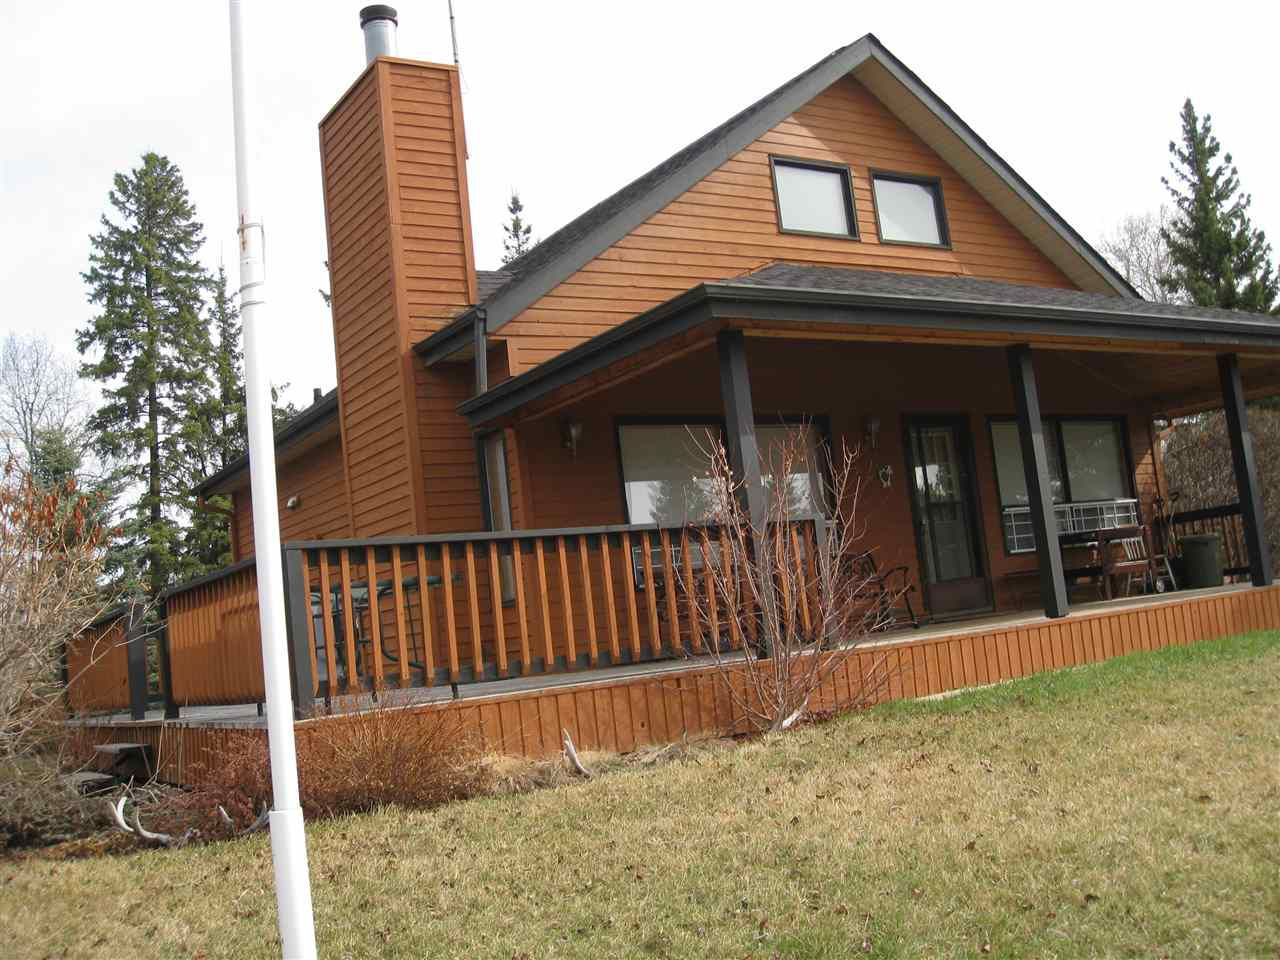 Main Photo: 47 54126 Rge Rd 52: Rural Lac Ste. Anne County House for sale : MLS®# E4108375